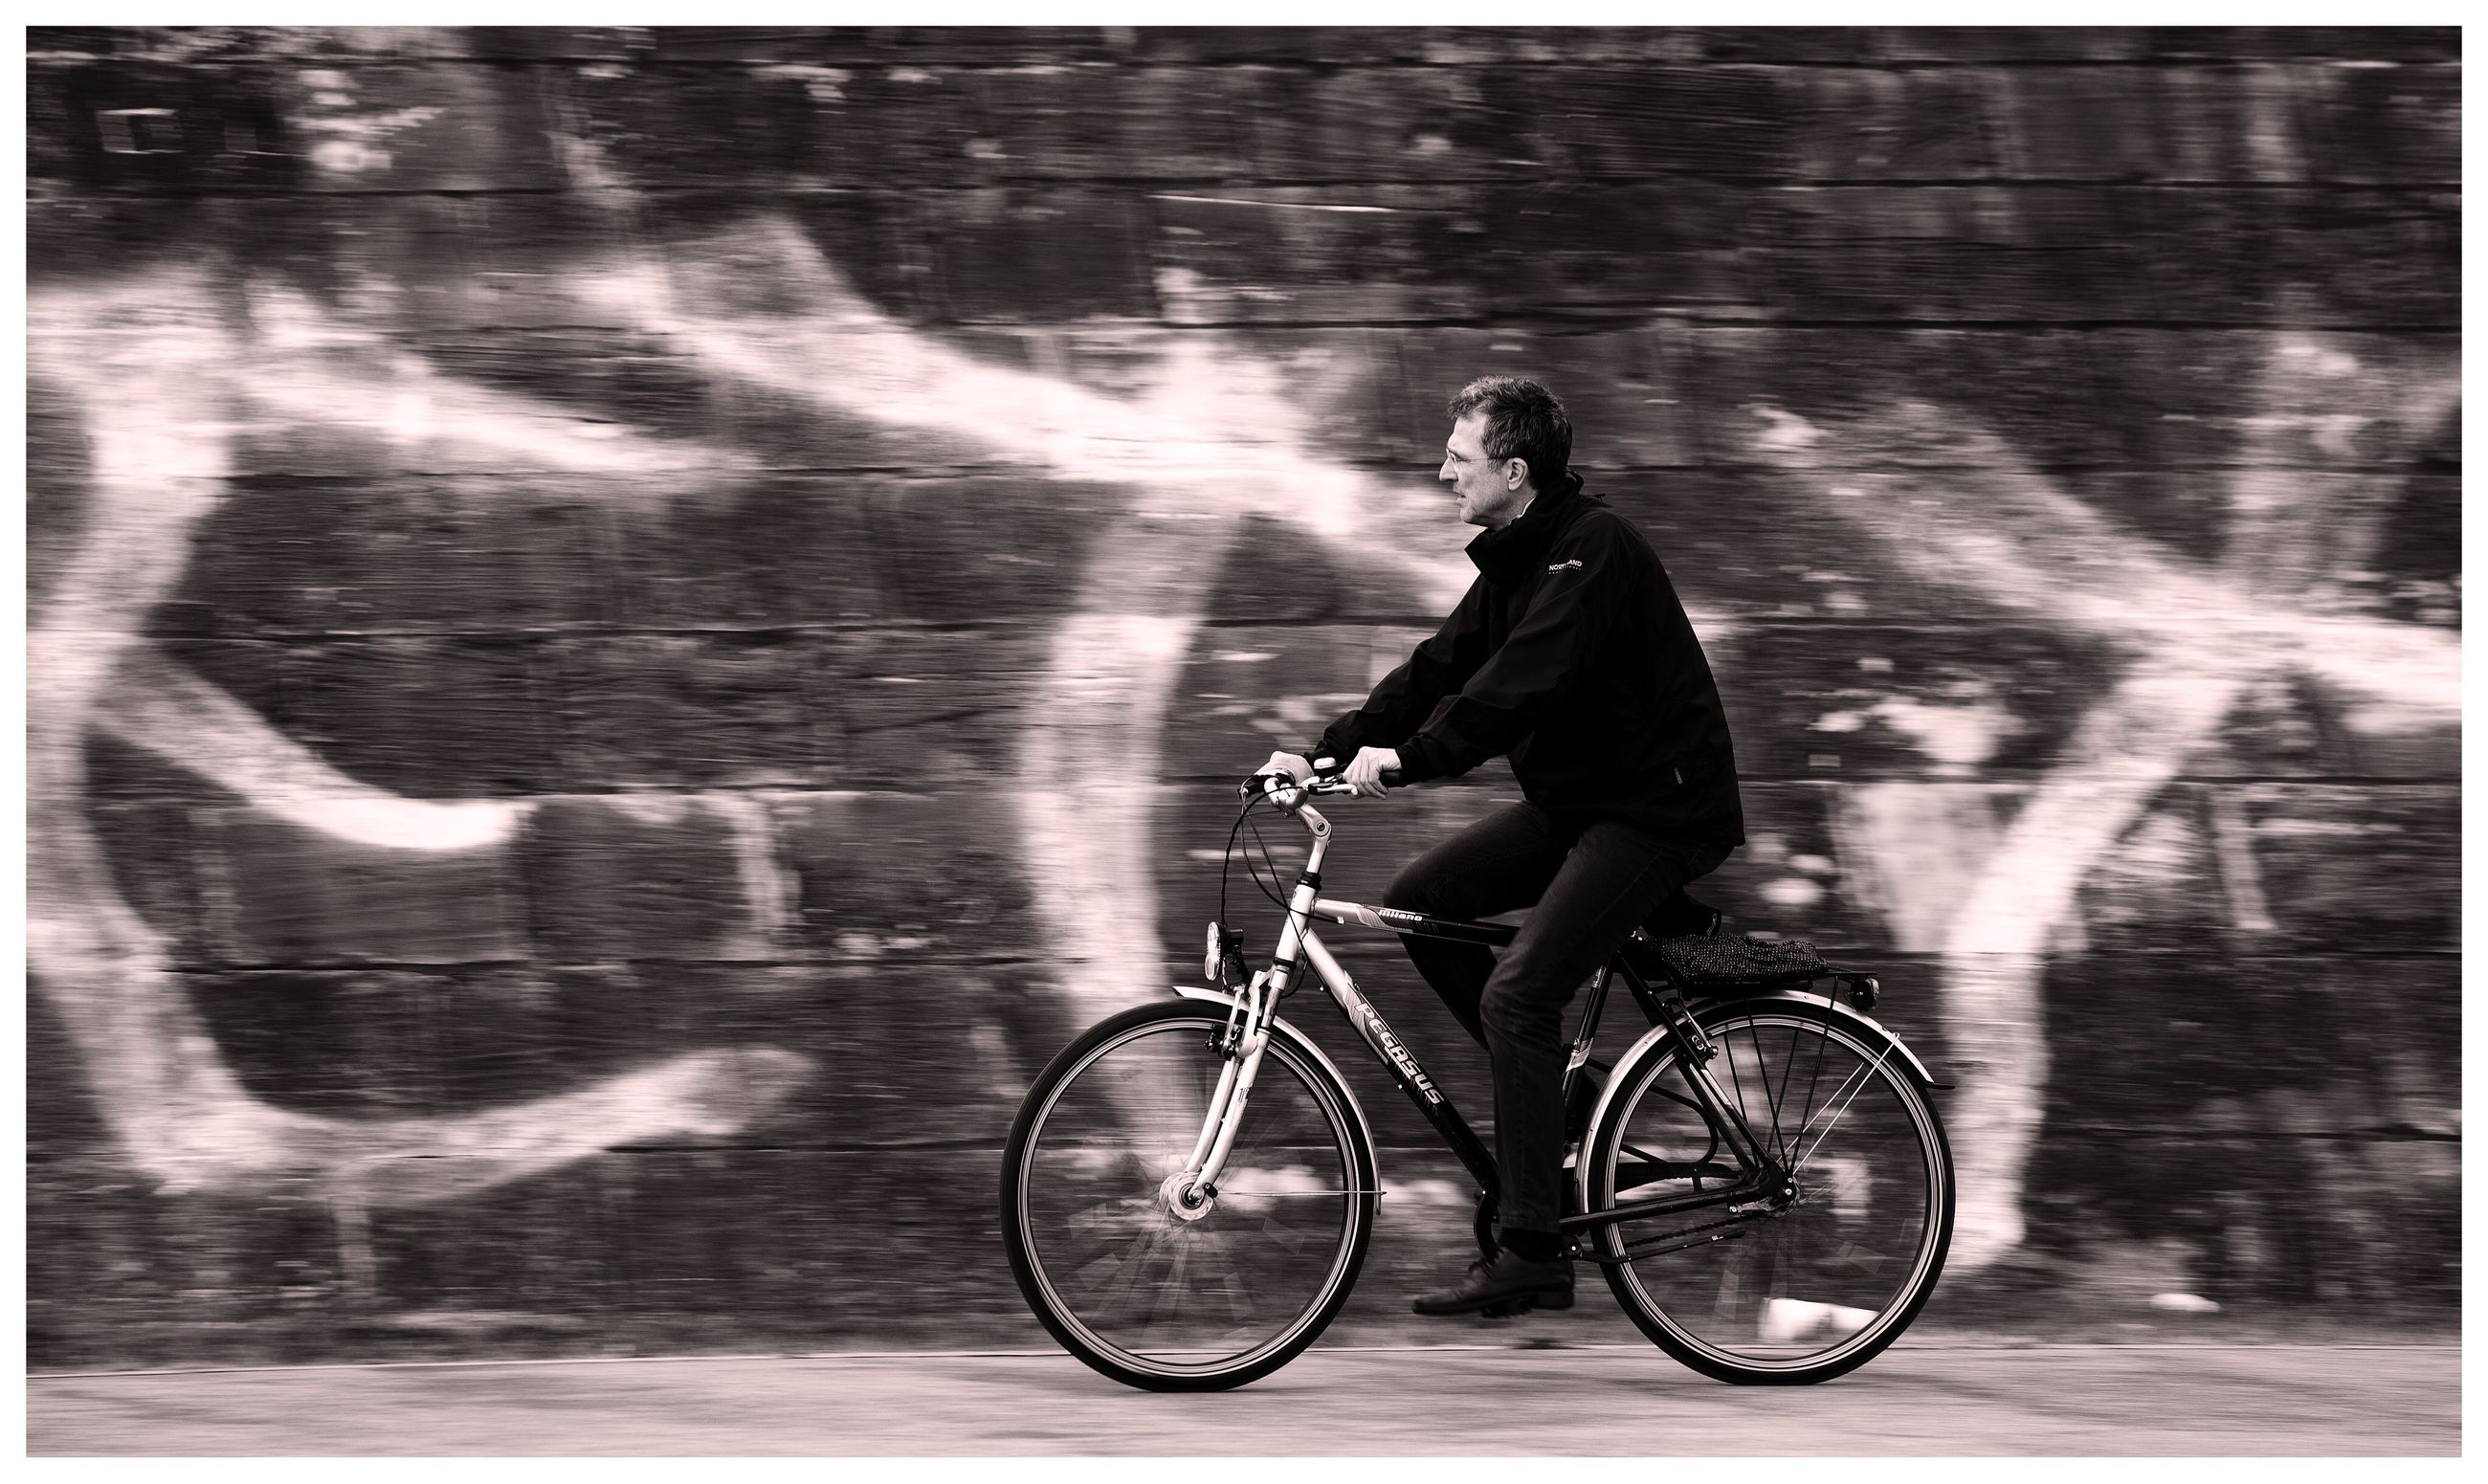 bicycle, transportation, mode of transport, land vehicle, full length, riding, cycling, side view, shadow, motion, on the move, travel, outdoors